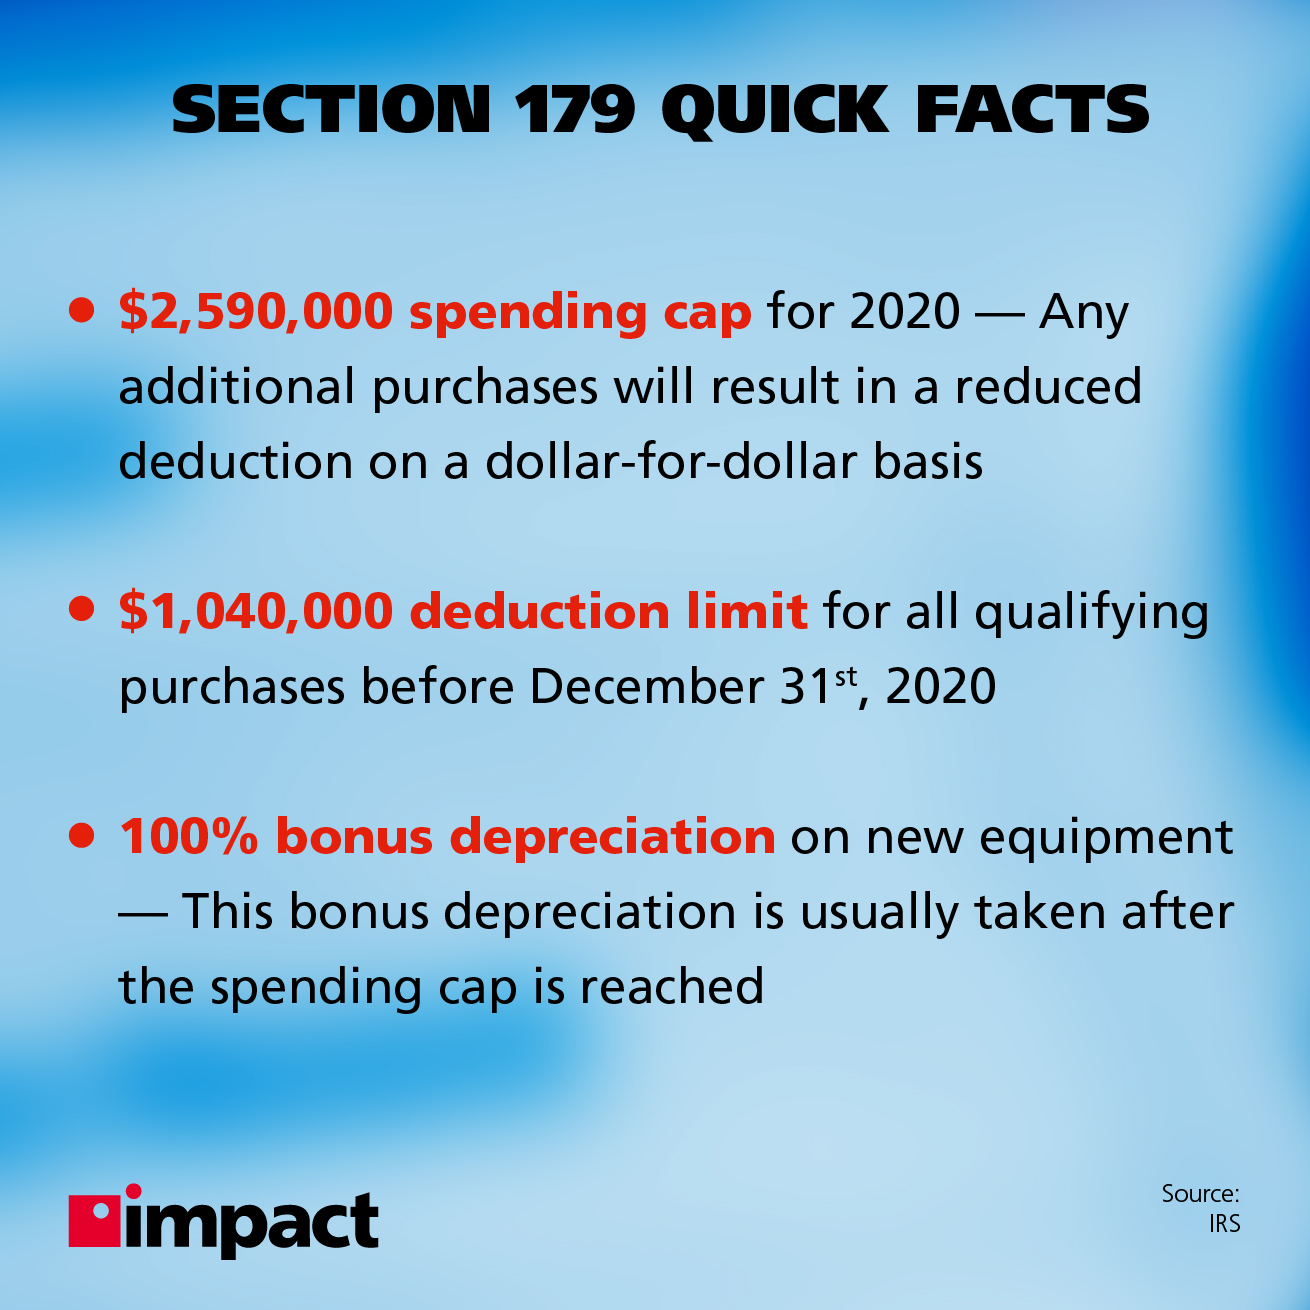 IRS Section 179 quick facts